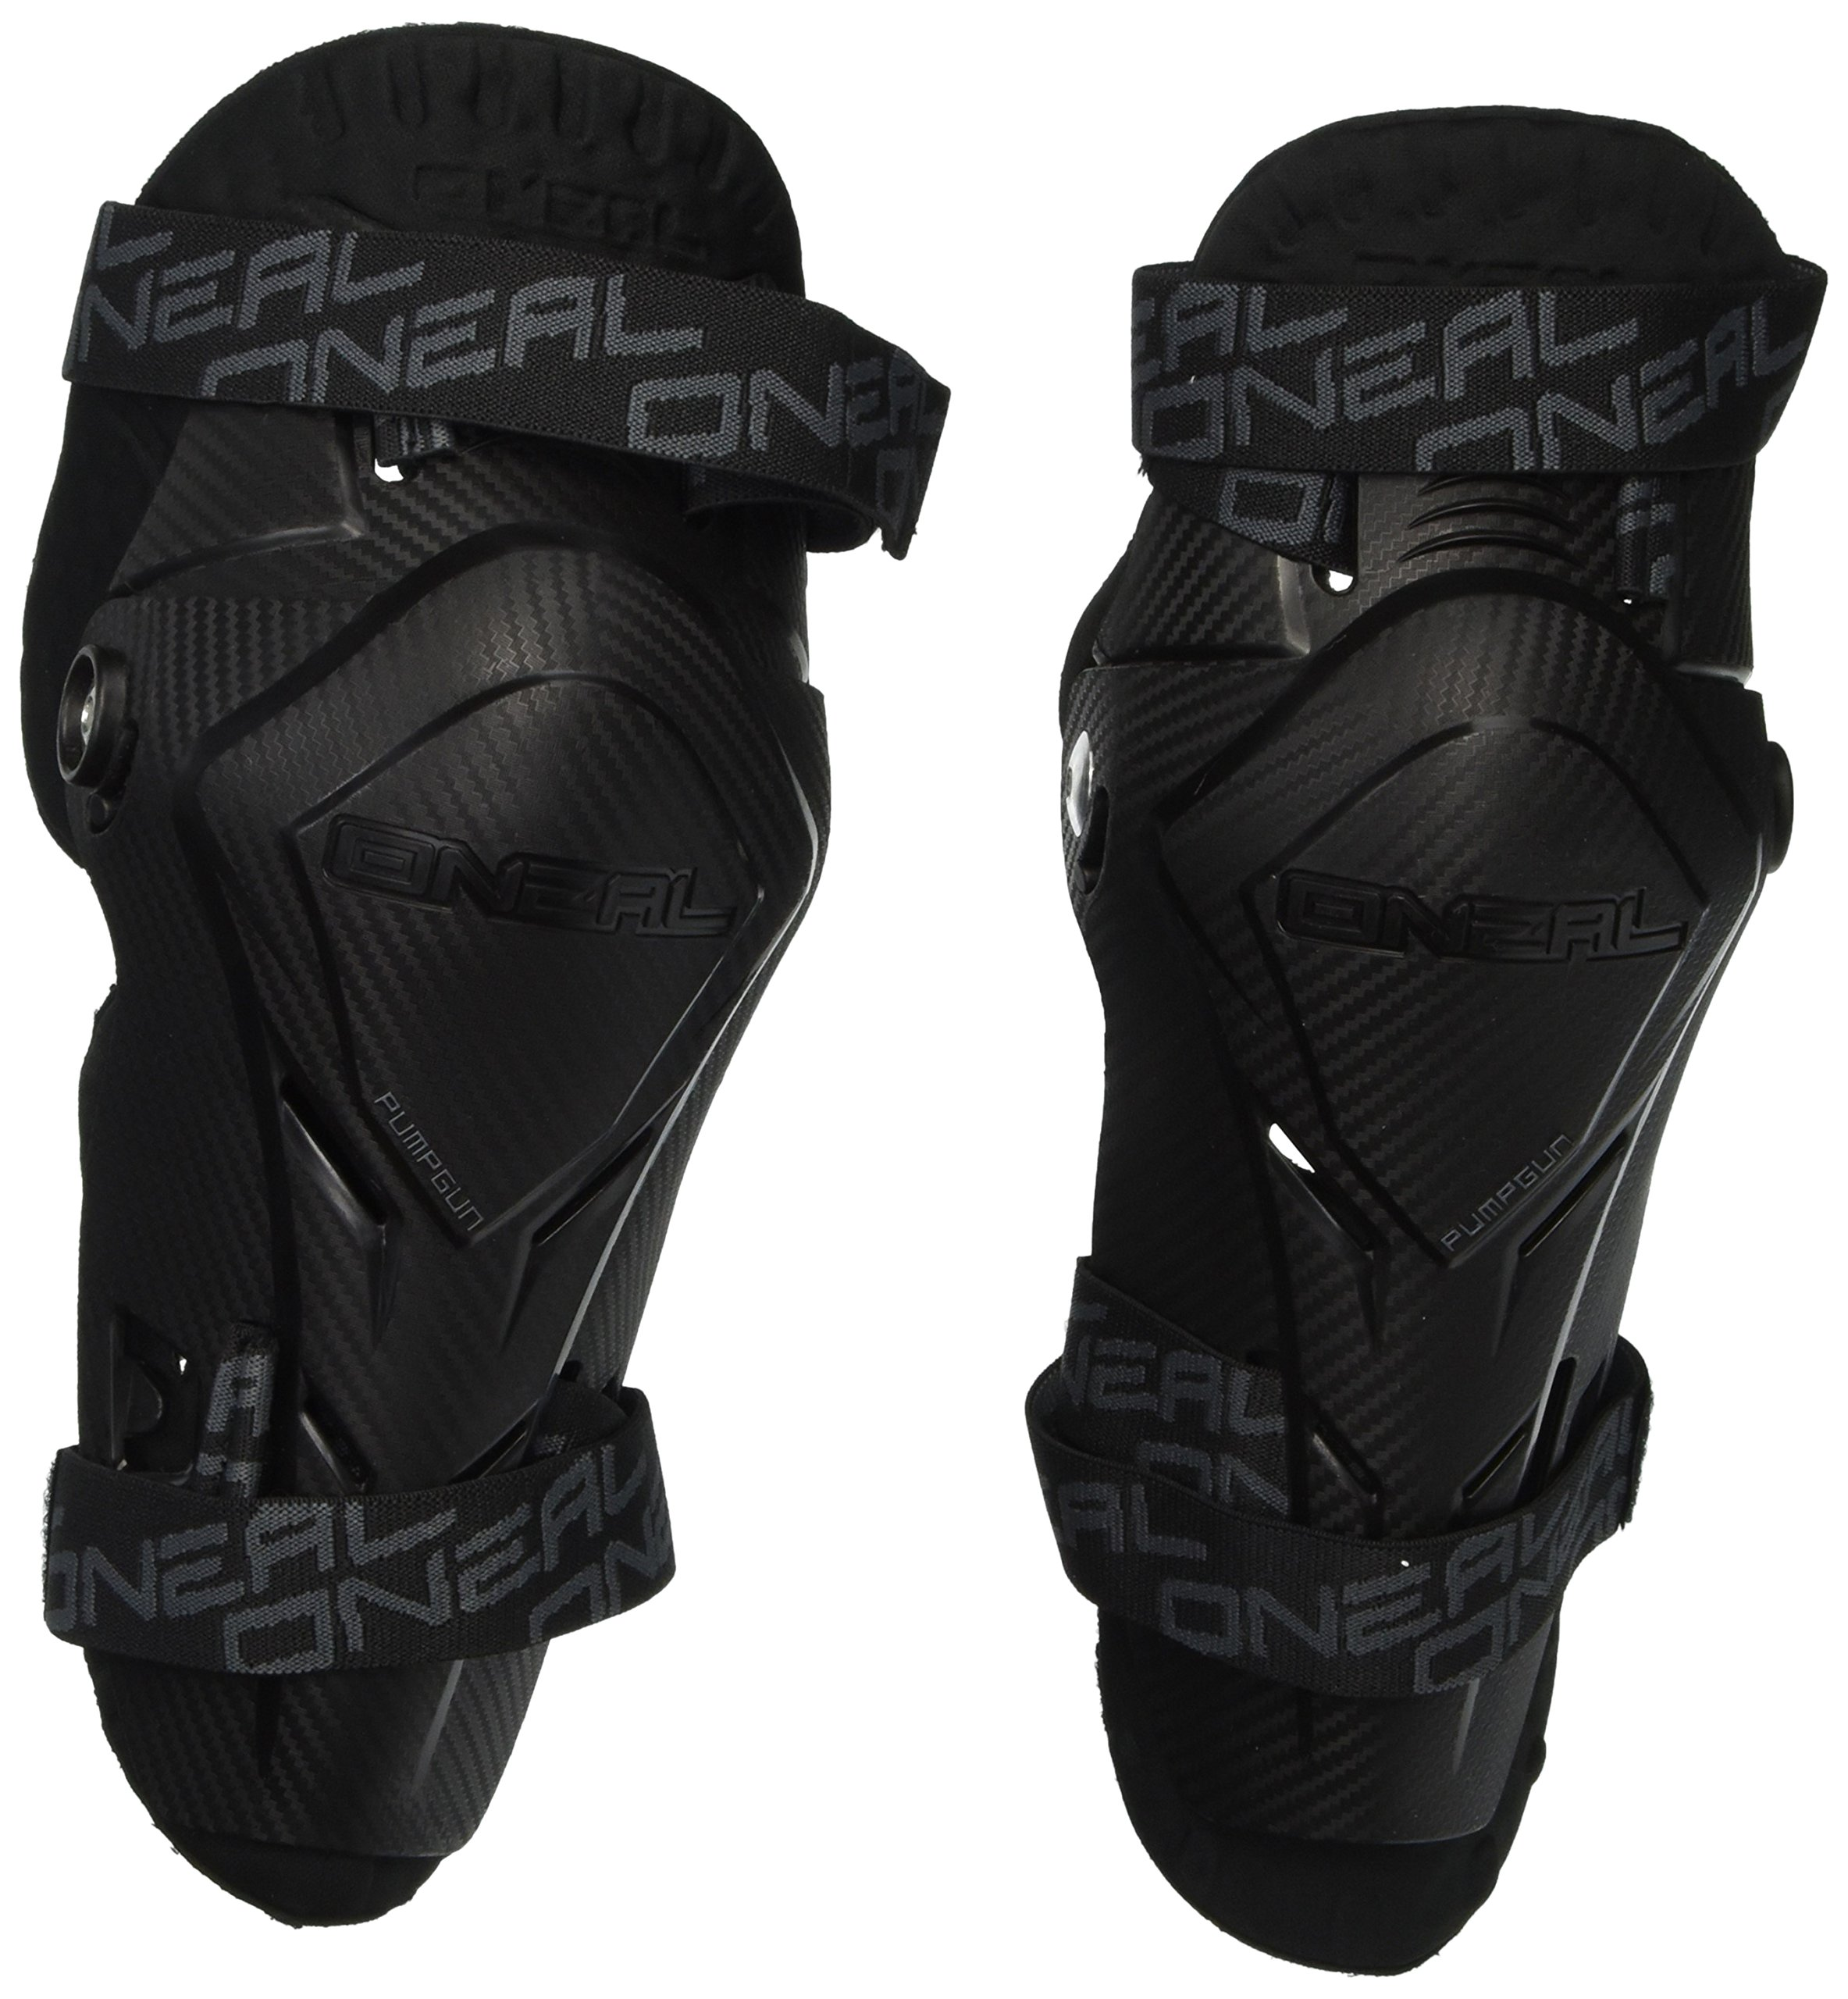 2010 Model Large//X-Large - 2703-0094 Alpinestars Motorcycle Touring Kidney Belt